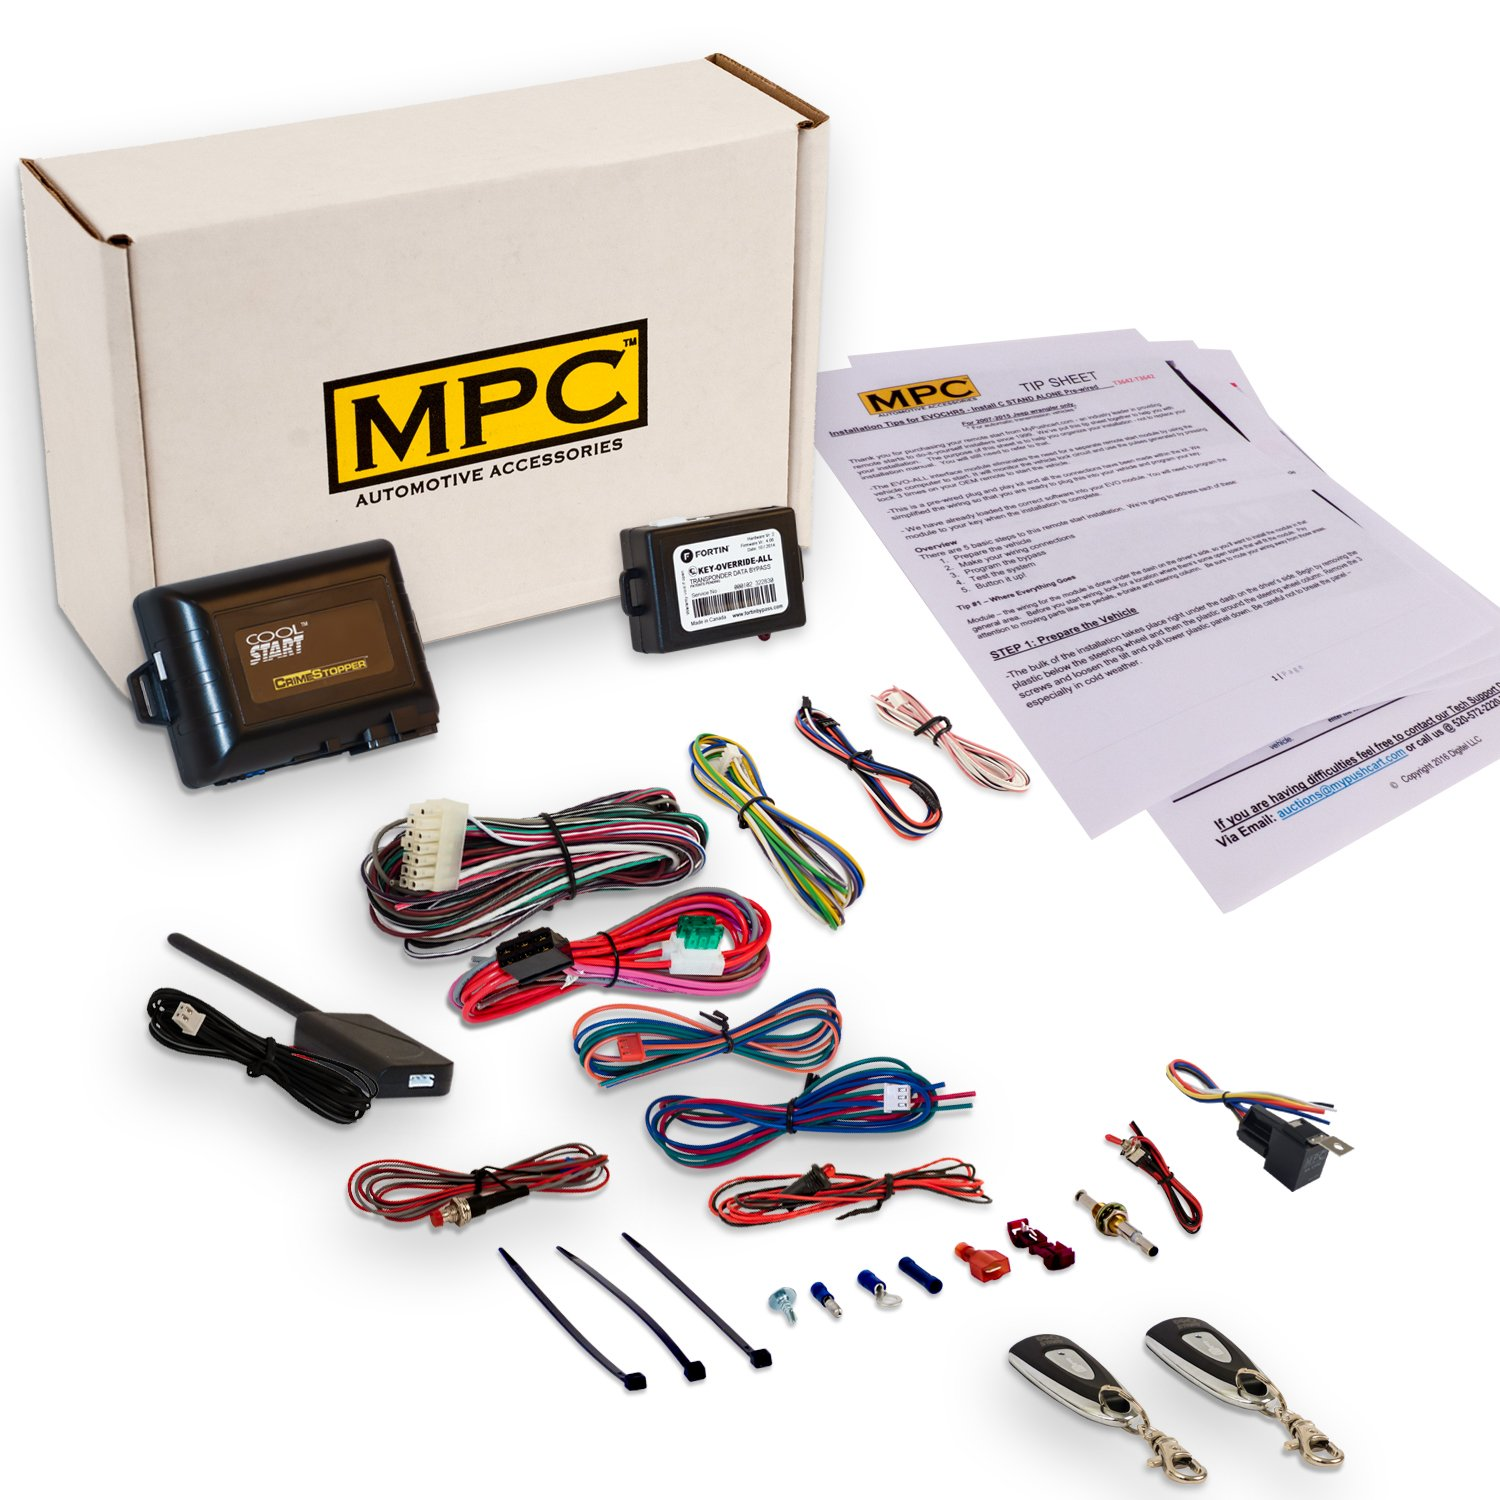 MPC Complete 1-Button Remote Start Kit for 2005-2010 Toyota Camry - Includes Bypass and (2) Extended Range Remotes